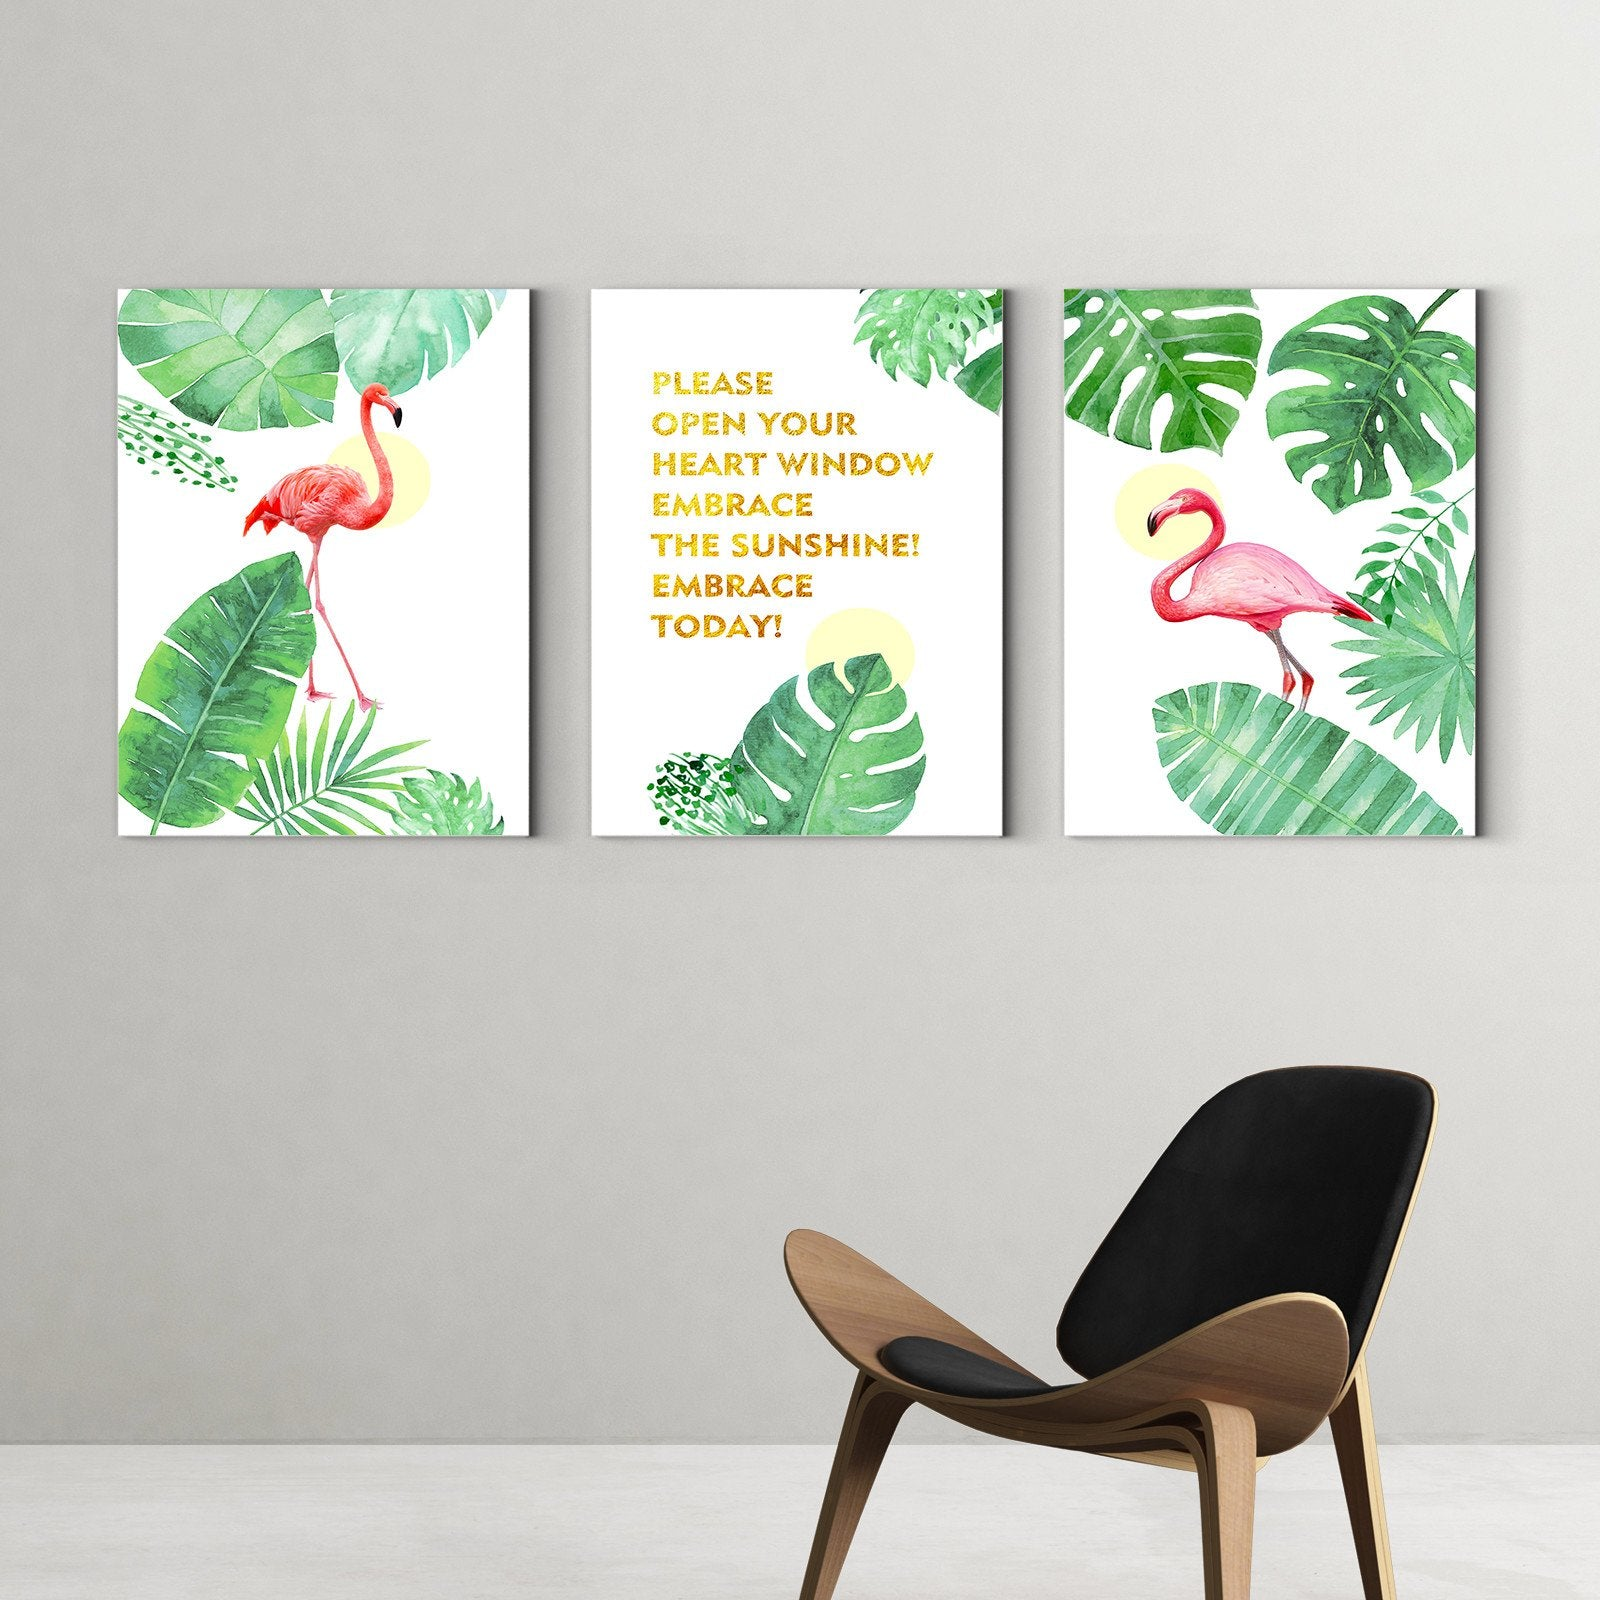 Walking flamingo - animal decorative painting - living room-Multi Panel Wall Art033